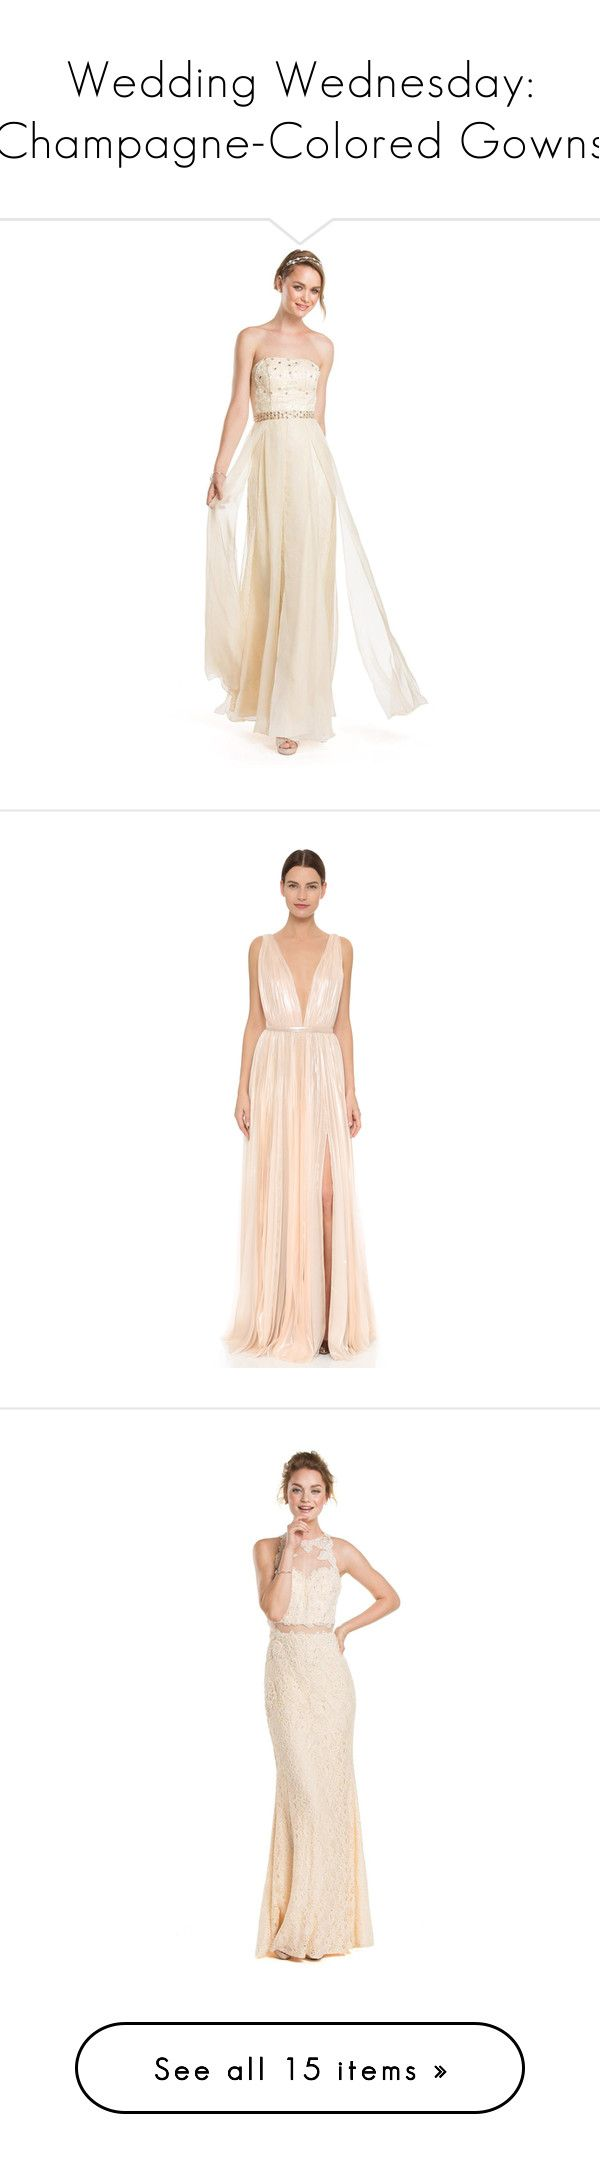 """""""Wedding Wednesday: Champagne-Colored Gowns"""" by polyvore-editorial ❤ liked on Polyvore featuring weddingwednesday, champagnegowns, dresses, gowns, champagne, formal dresses, long dresses, long evening dresses, lace gown and long formal evening gowns"""